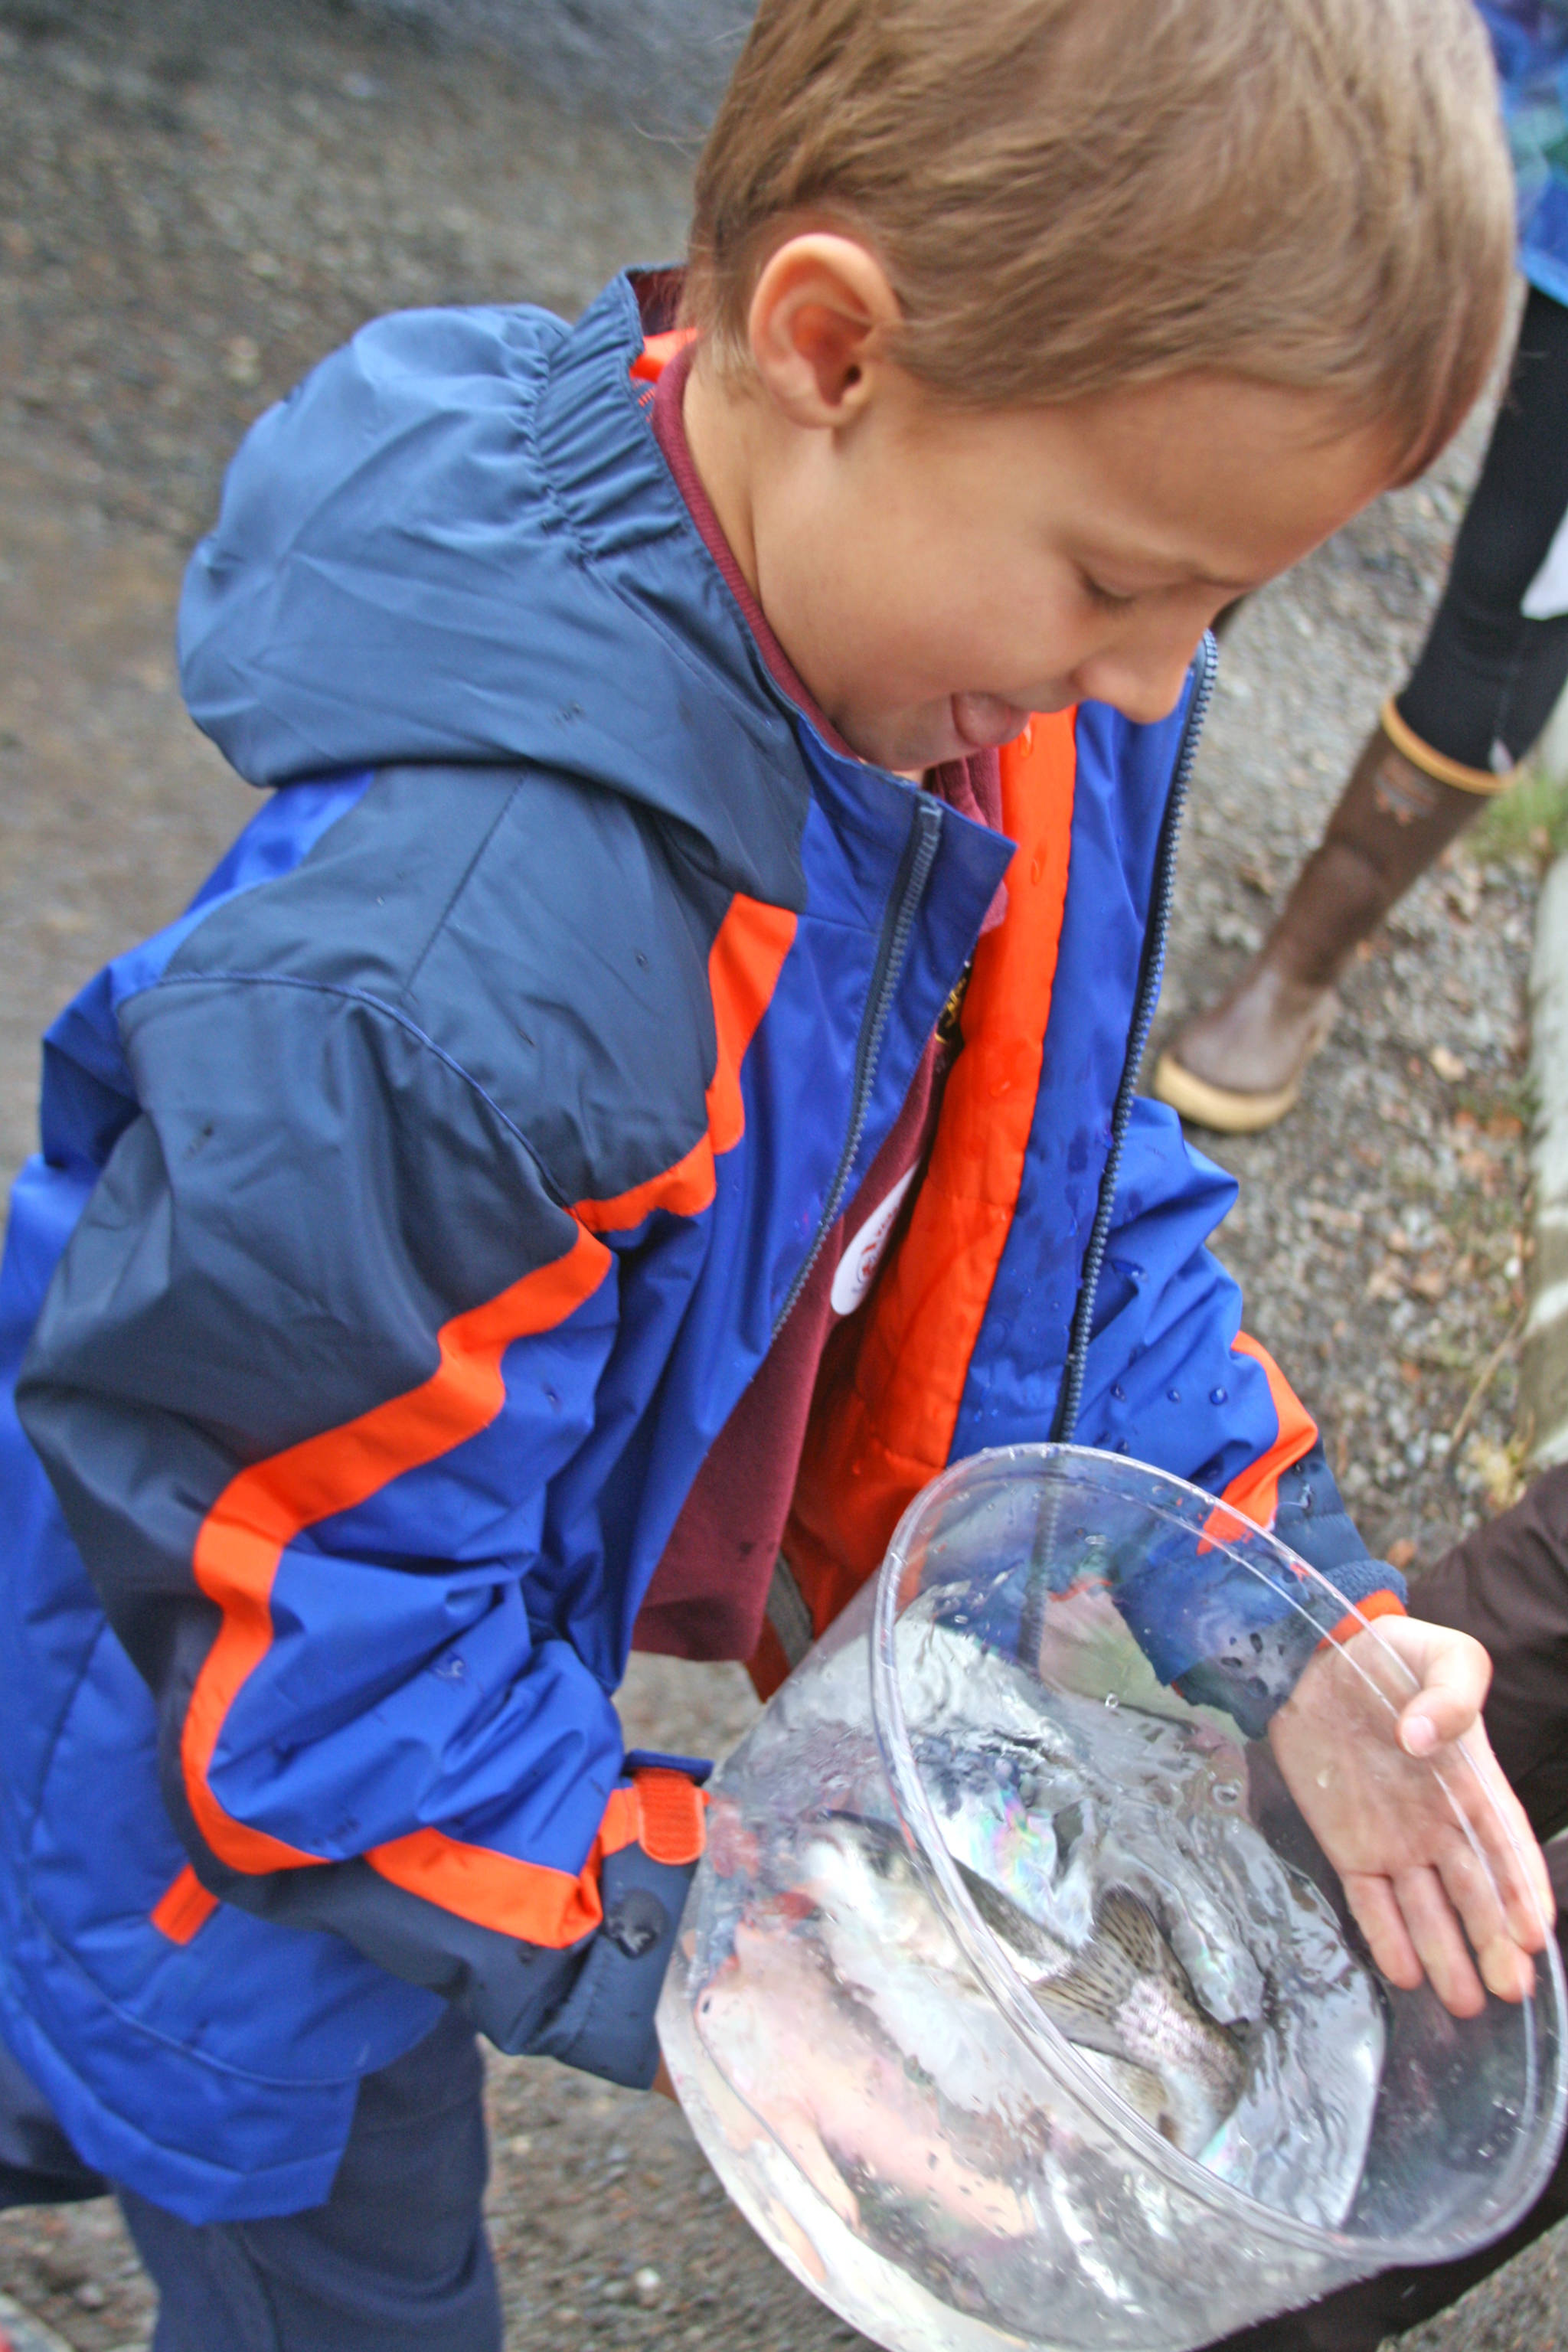 A student carries a rainbow trout at Johnson Lake State Recreation Site in Kasilof. Approximately 950 borough students released 5,000 fish into Johnson Lake as part of an Alaska Department of Fish and Game restocking effort. (Photo by Erin Thompson/Peninsula Clarion)